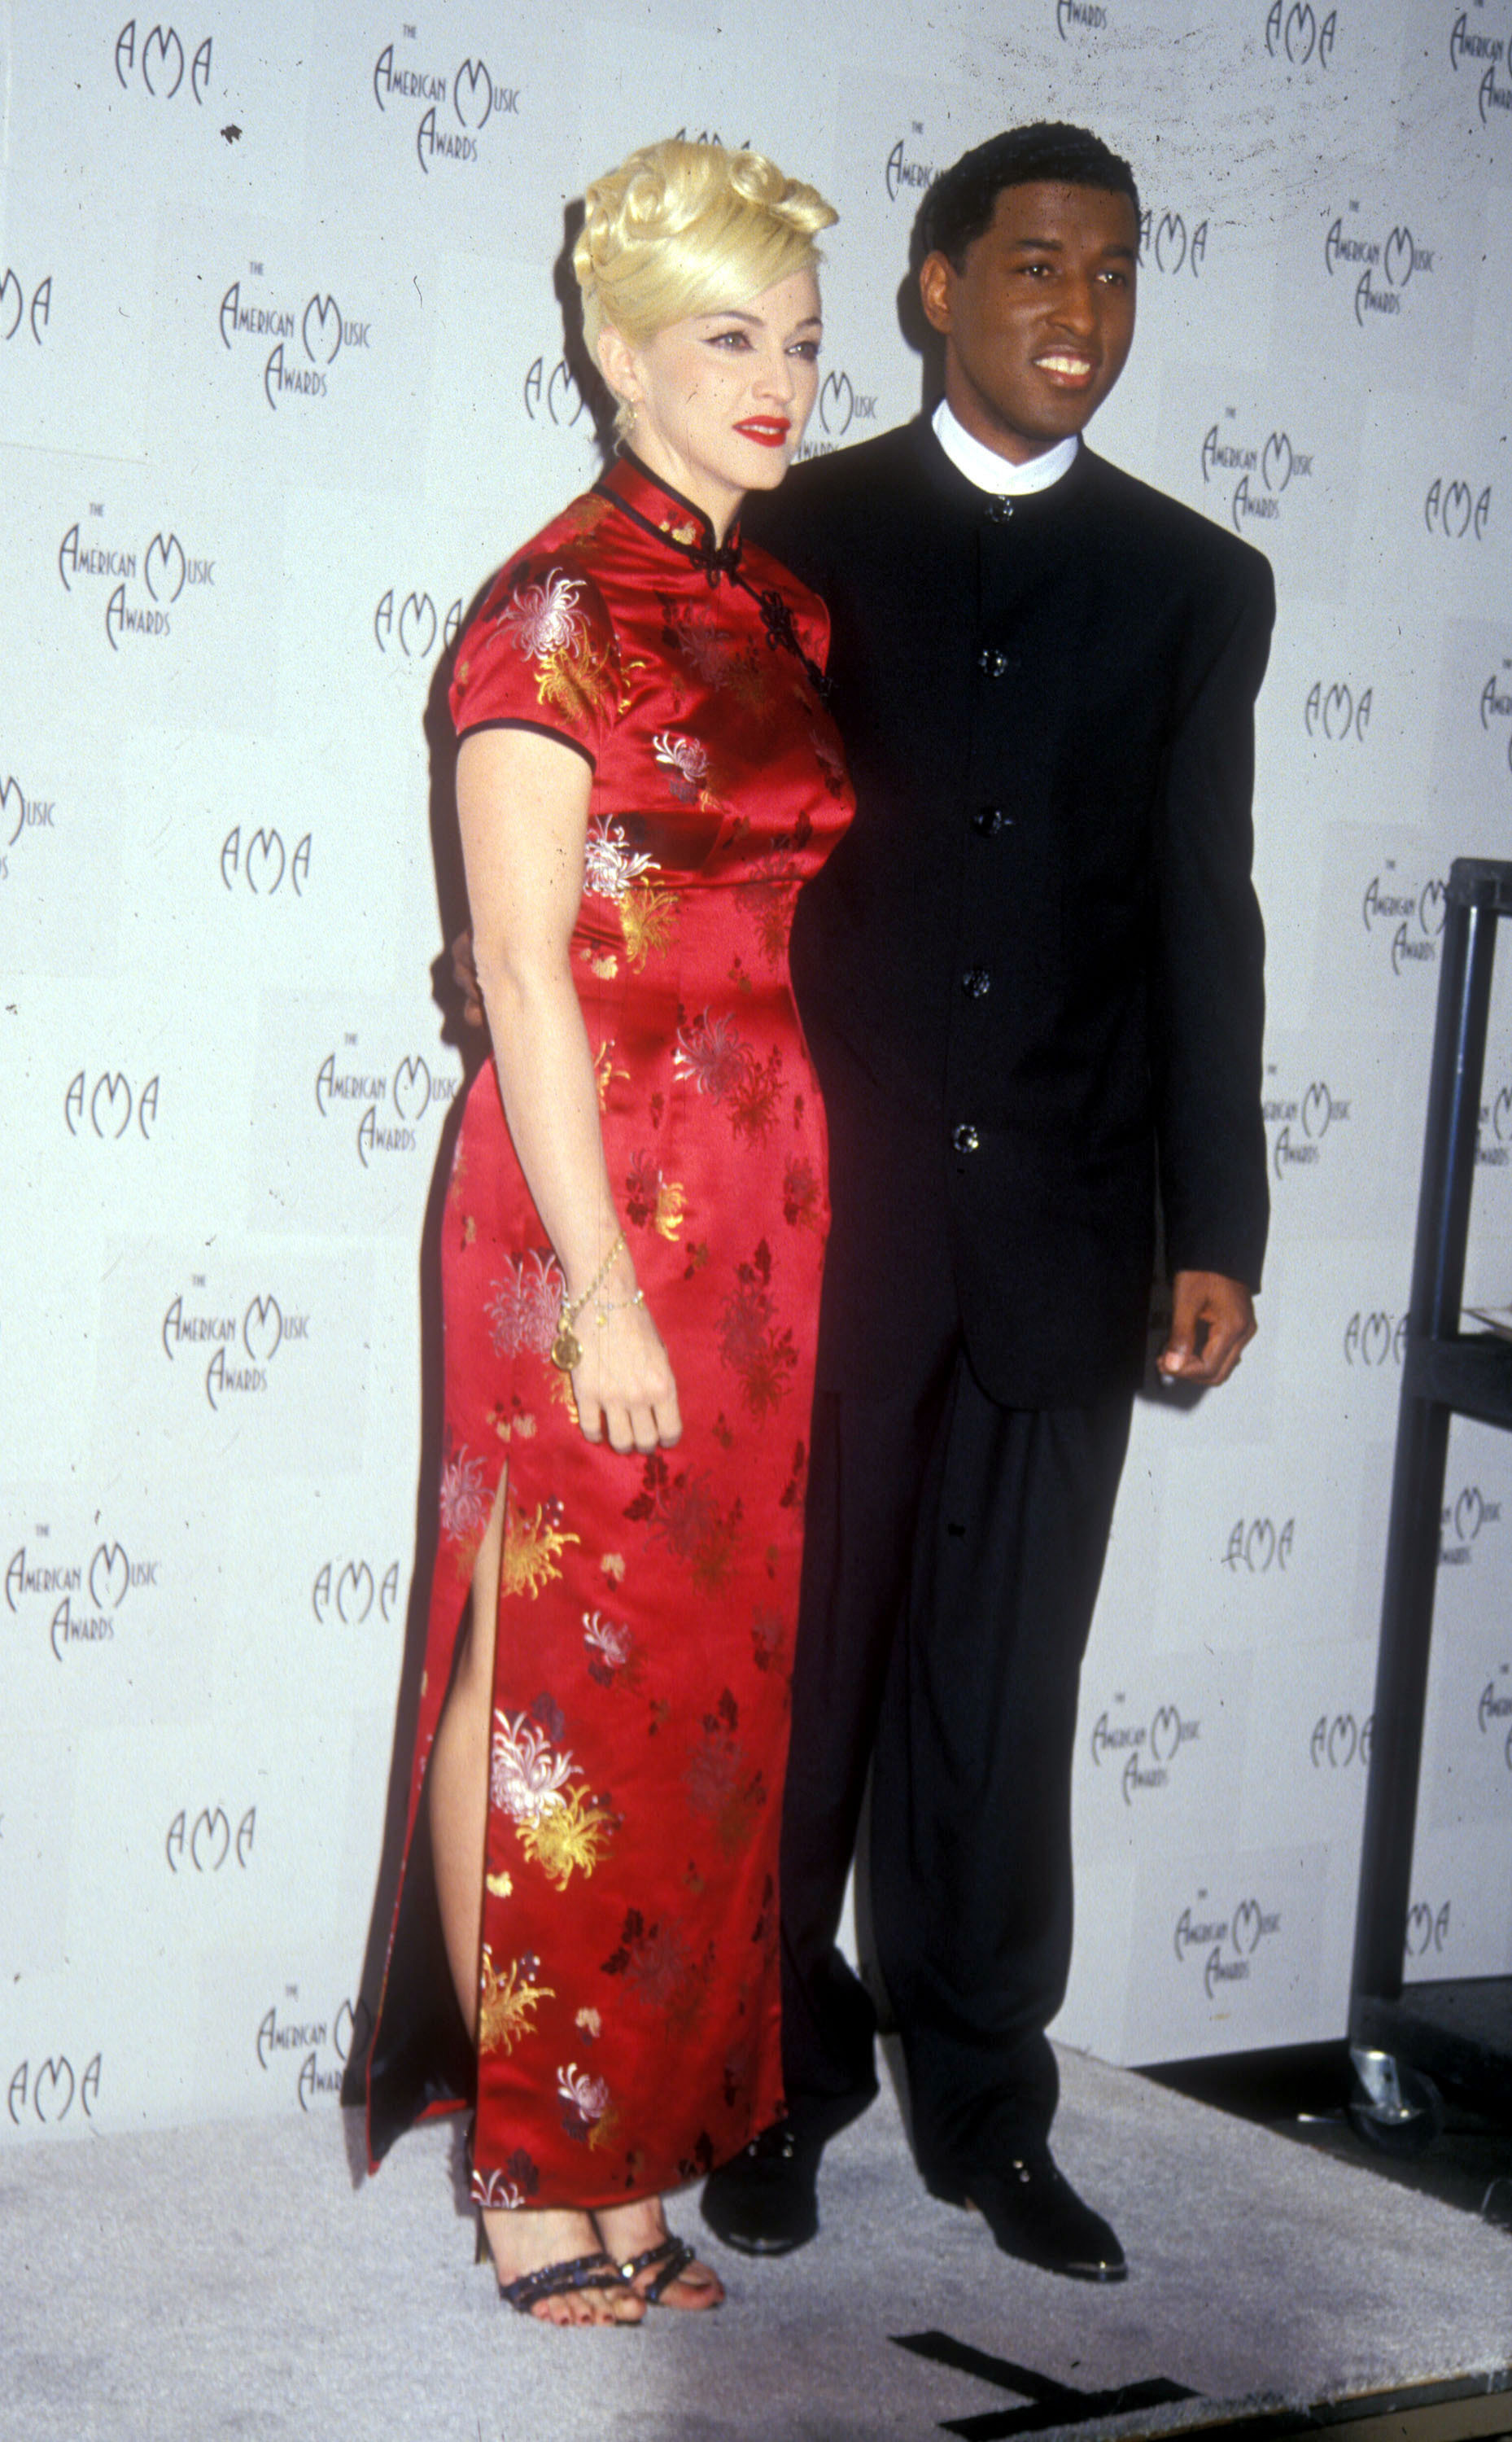 Madonna and Babyface Edmonds pose after performing together at the 22nd American Music Awards in Los Angeles on Jan. 30, 1995.